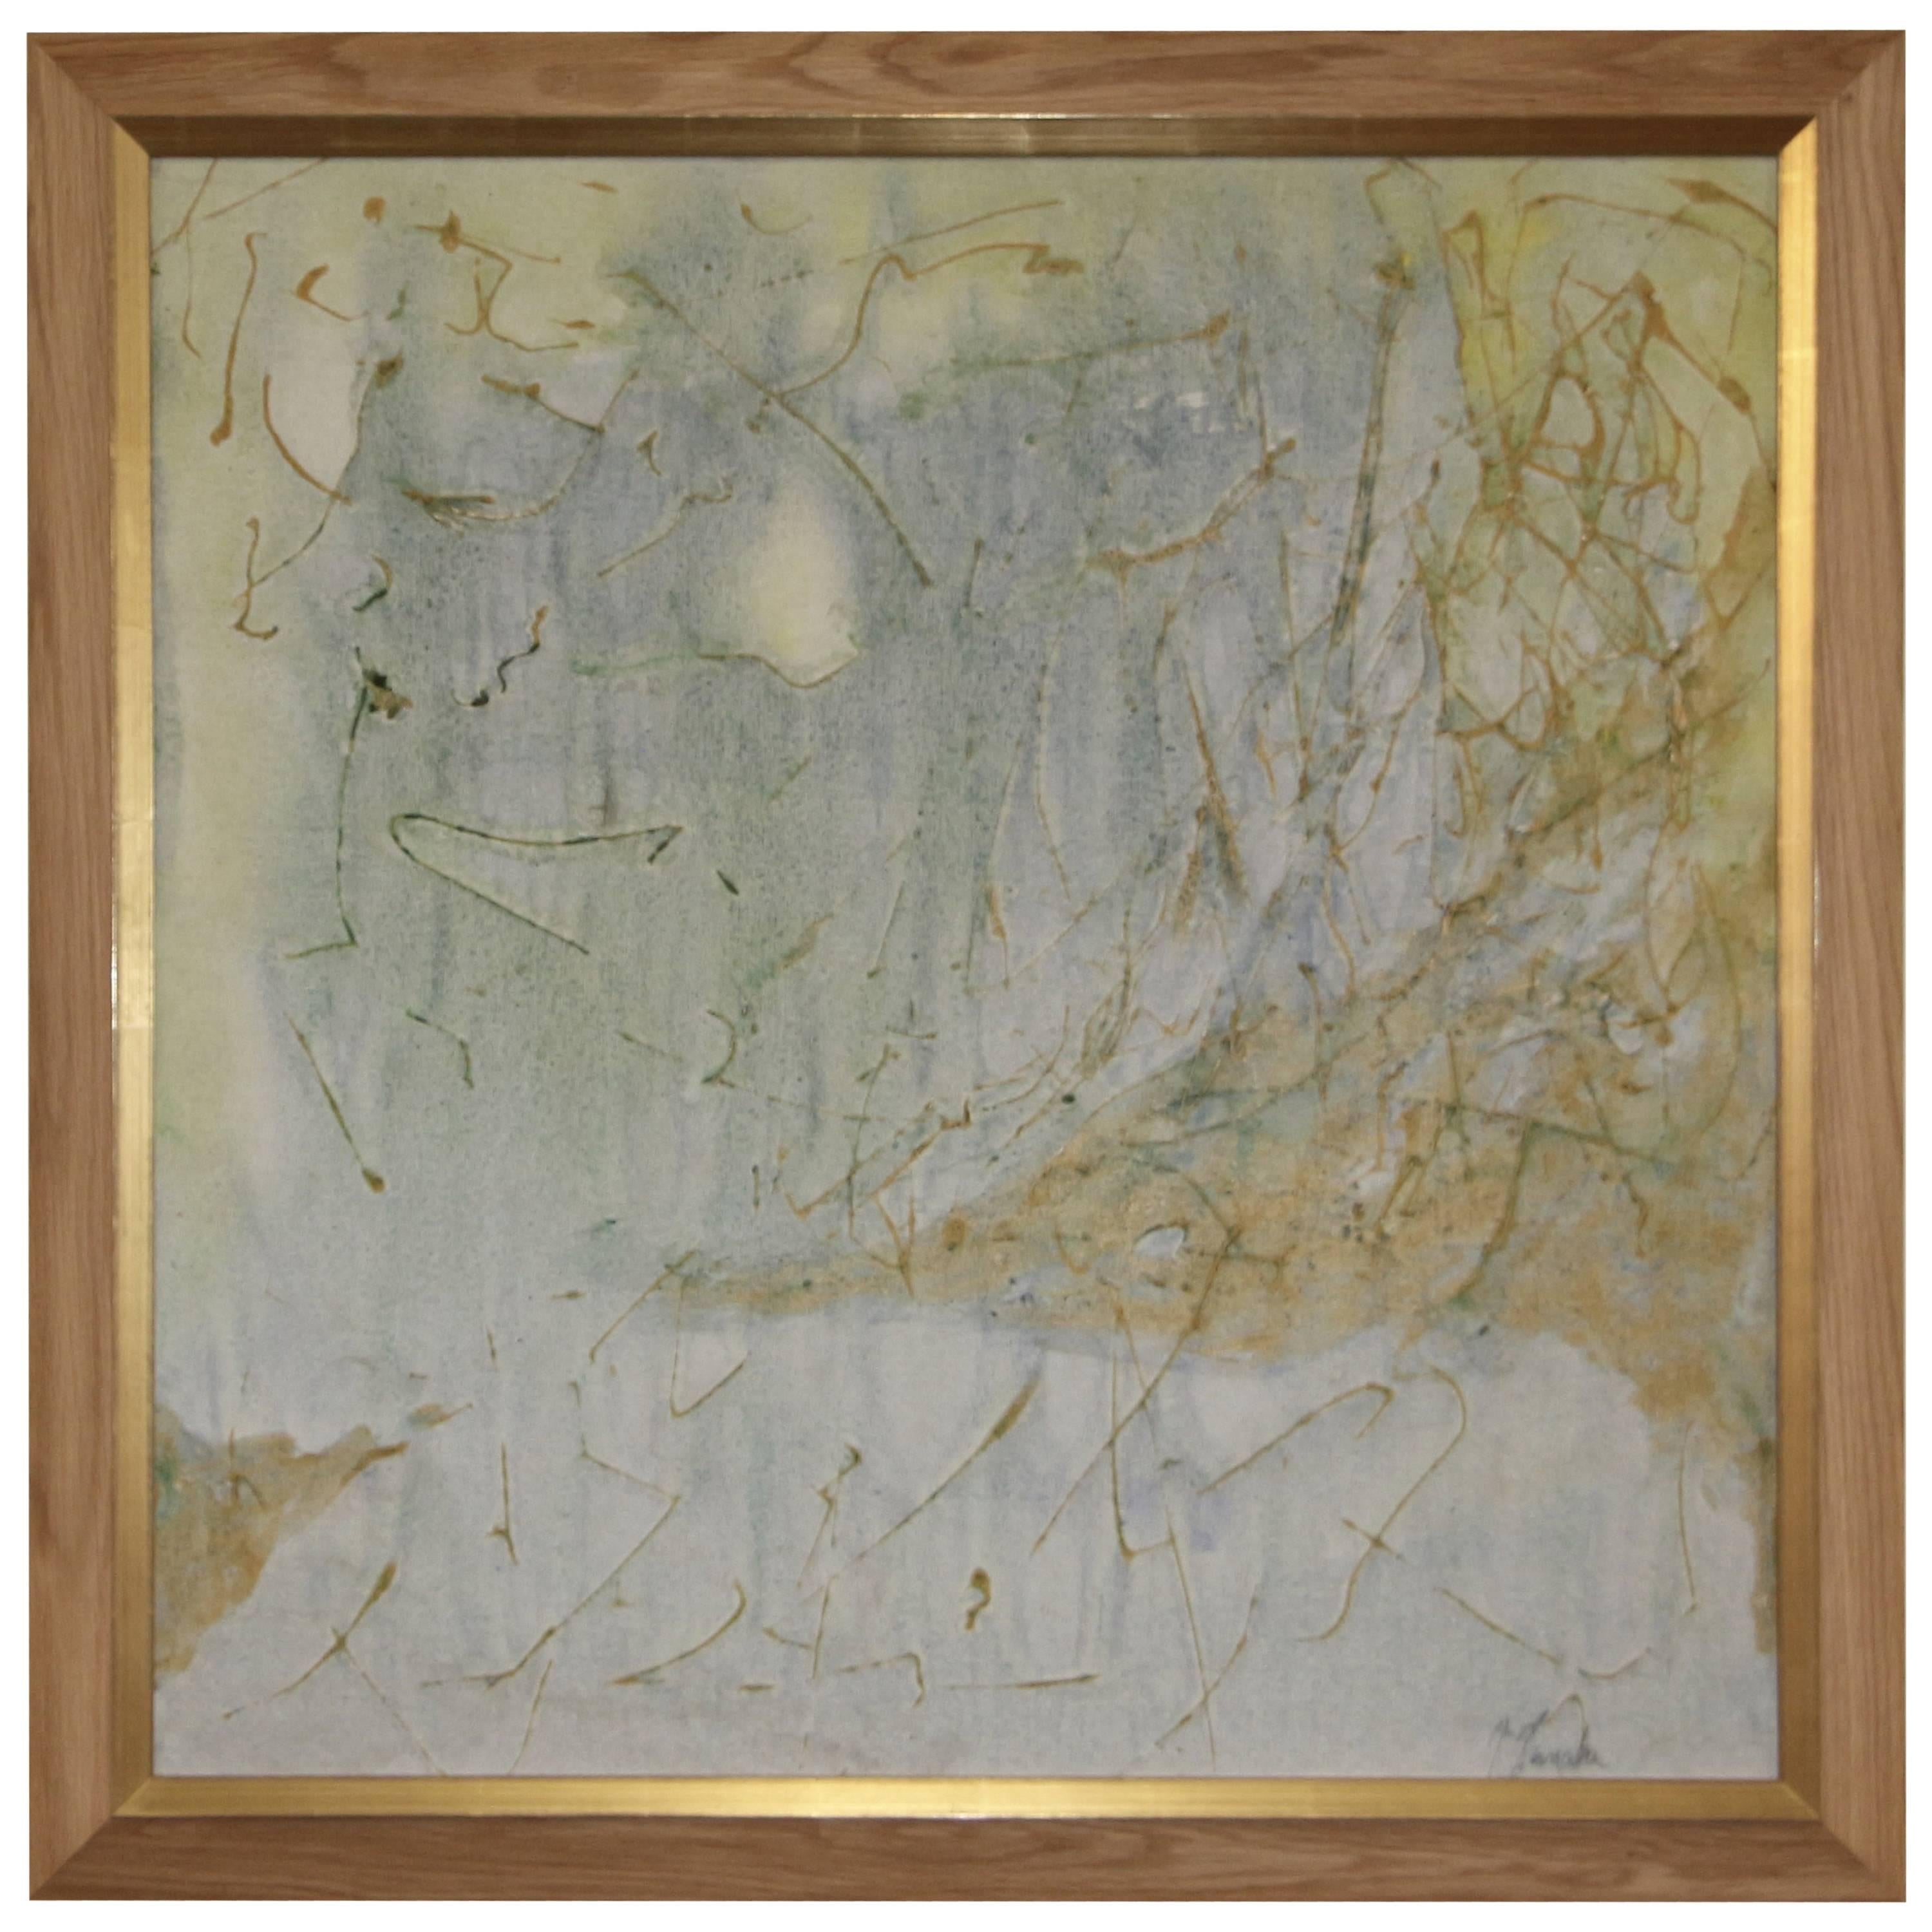 Great Abstract on Canvas, signed illegibly (Tanaka?)